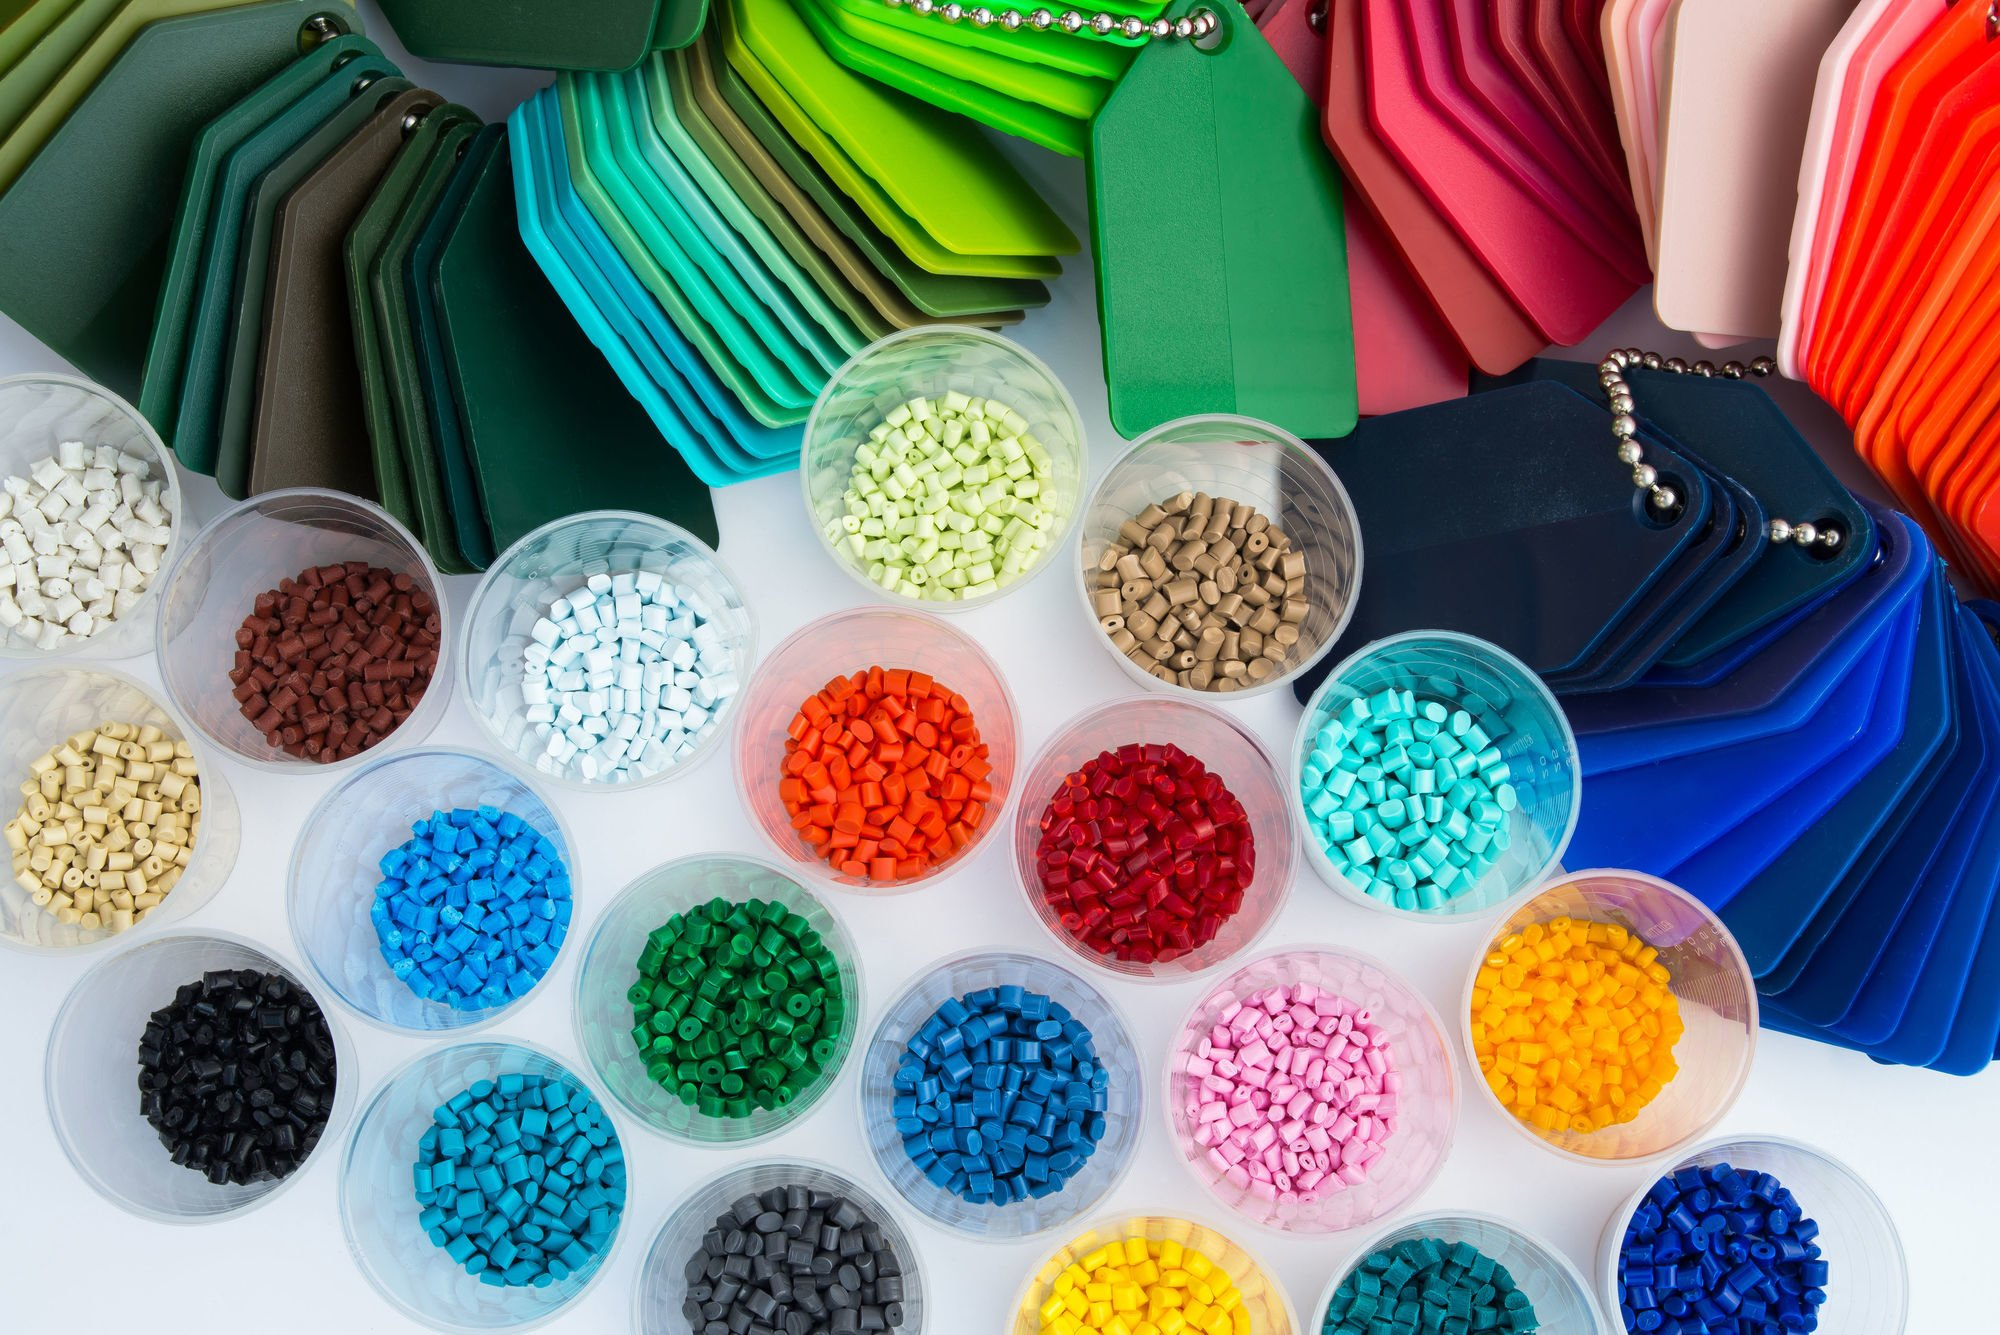 Microplastics From Textiles Cause Worry This Is What We